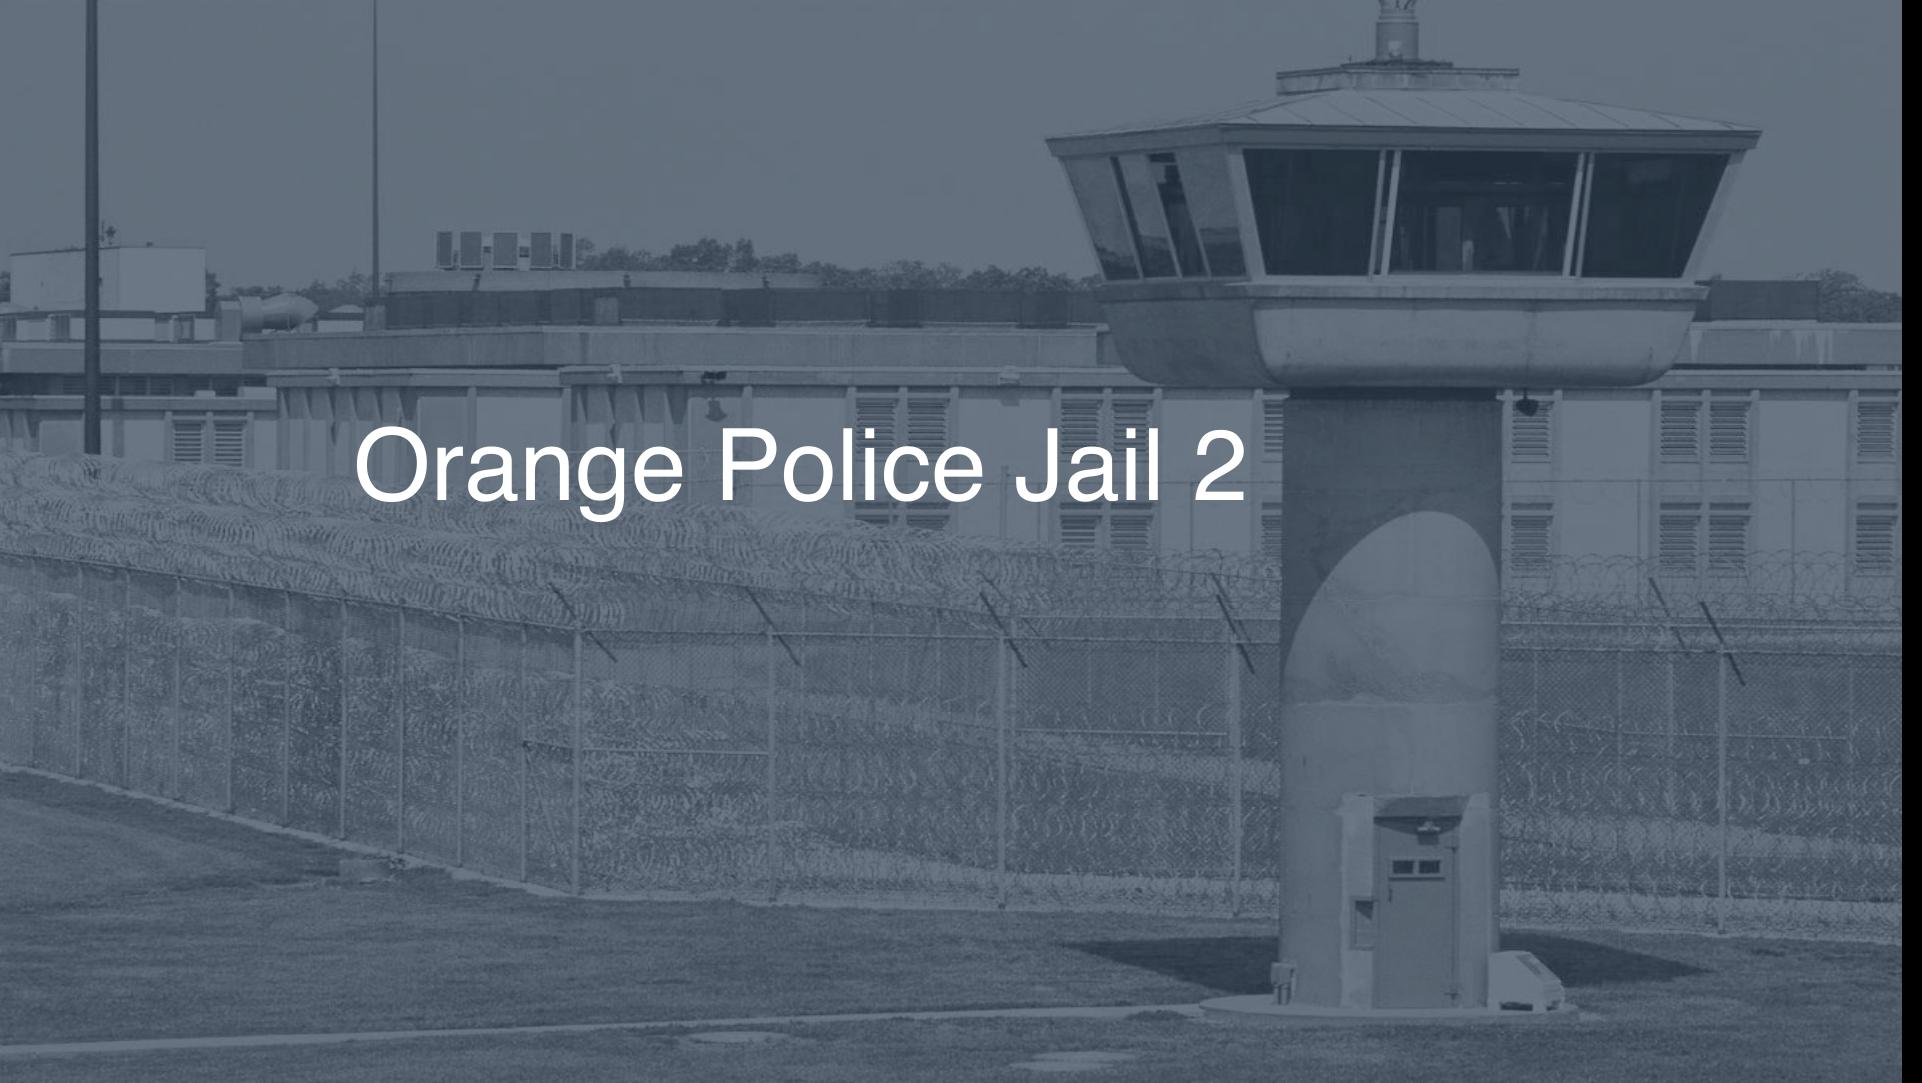 Orange Police Jail correctional facility picture